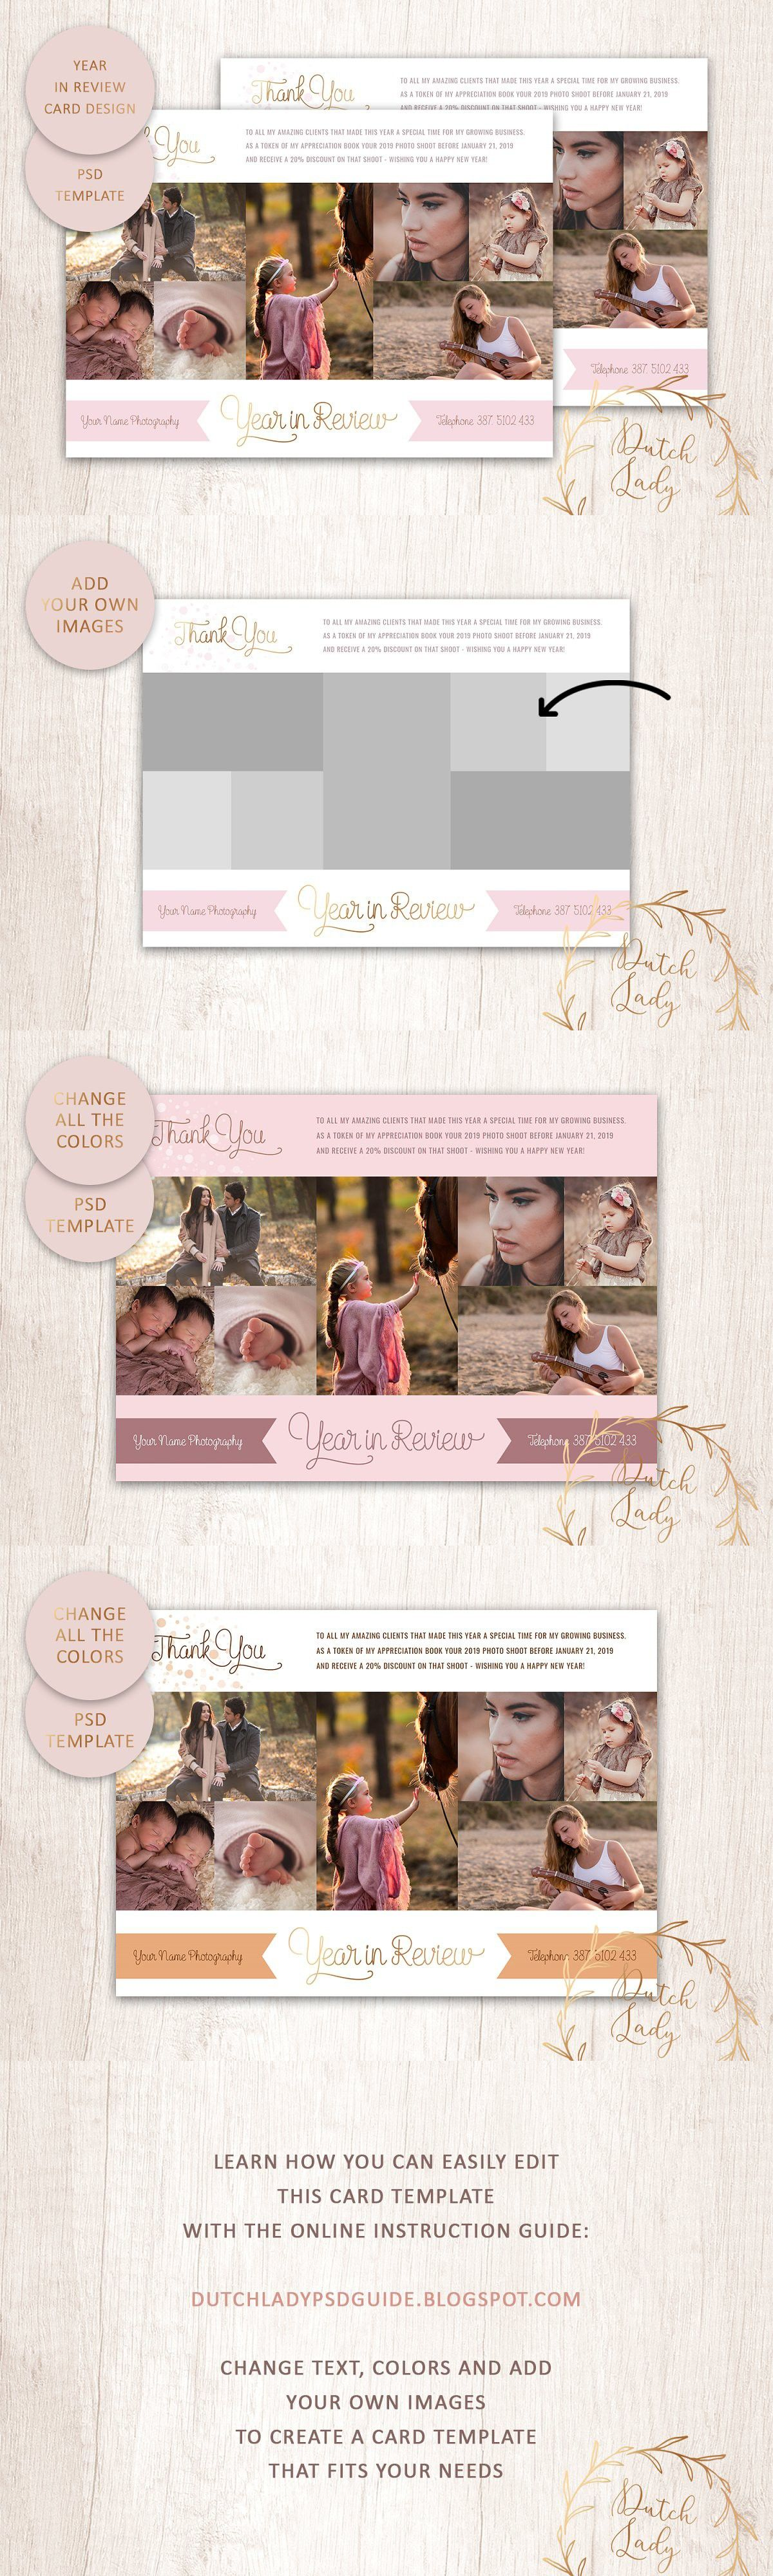 Psd Year In Review Card Template 4 Card Template Graphic Design Company Card Design